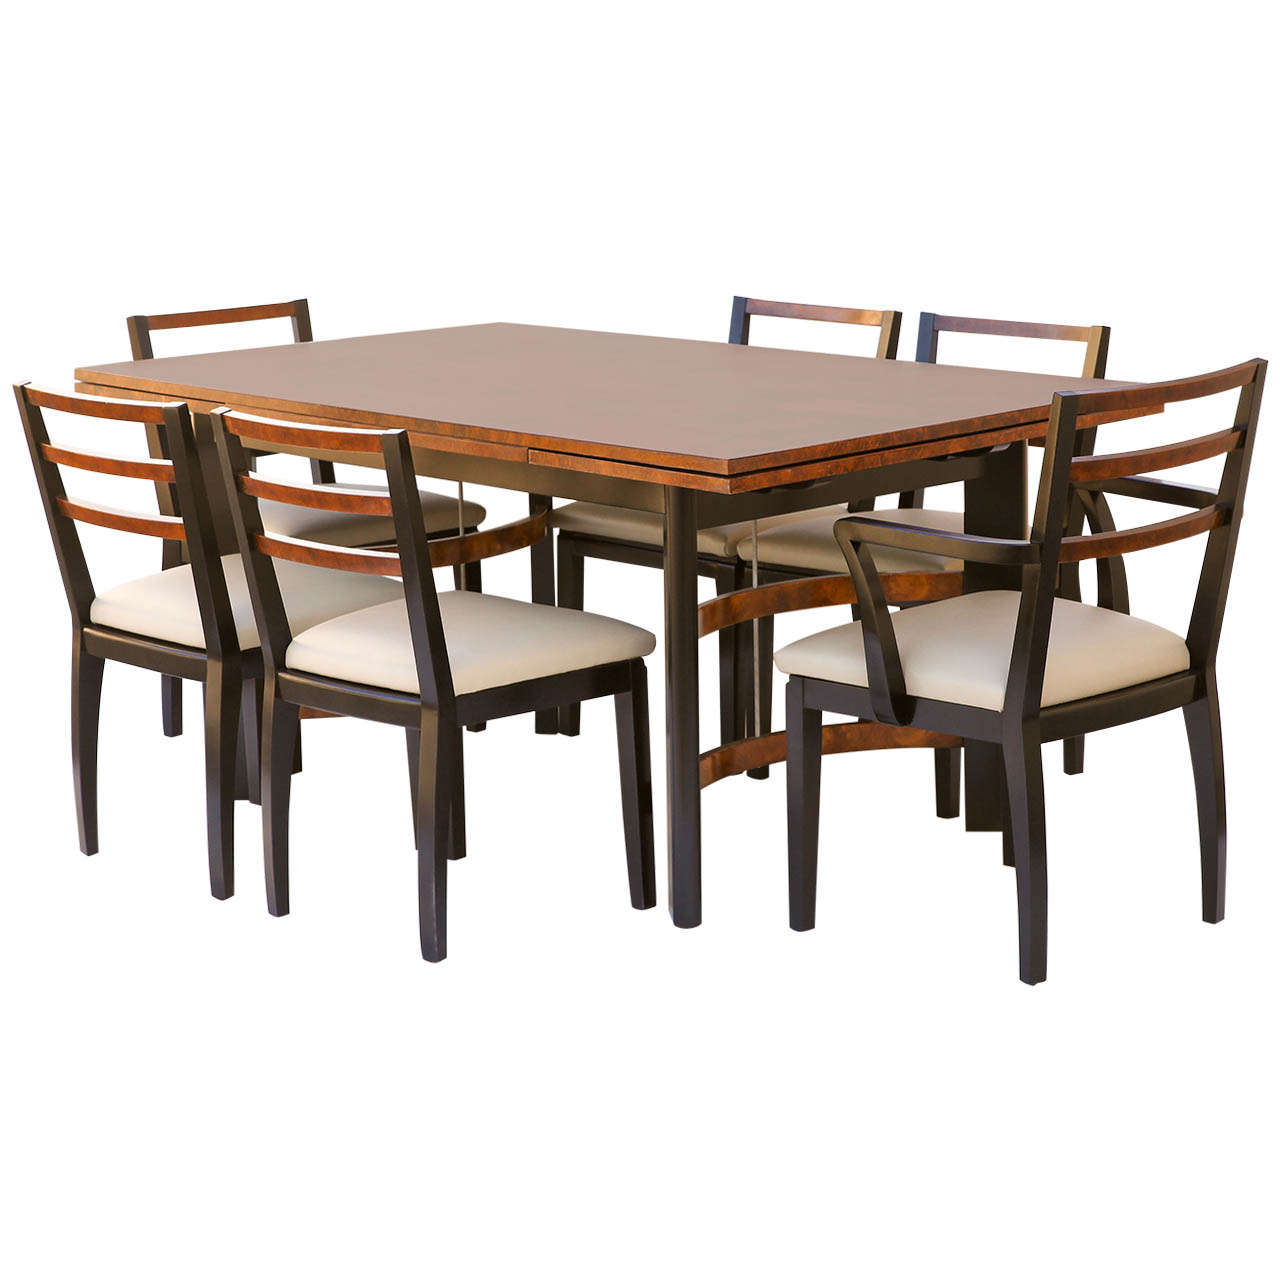 Hastings Art Deco Dining Set By Teague Or Deskey At 1stdibs